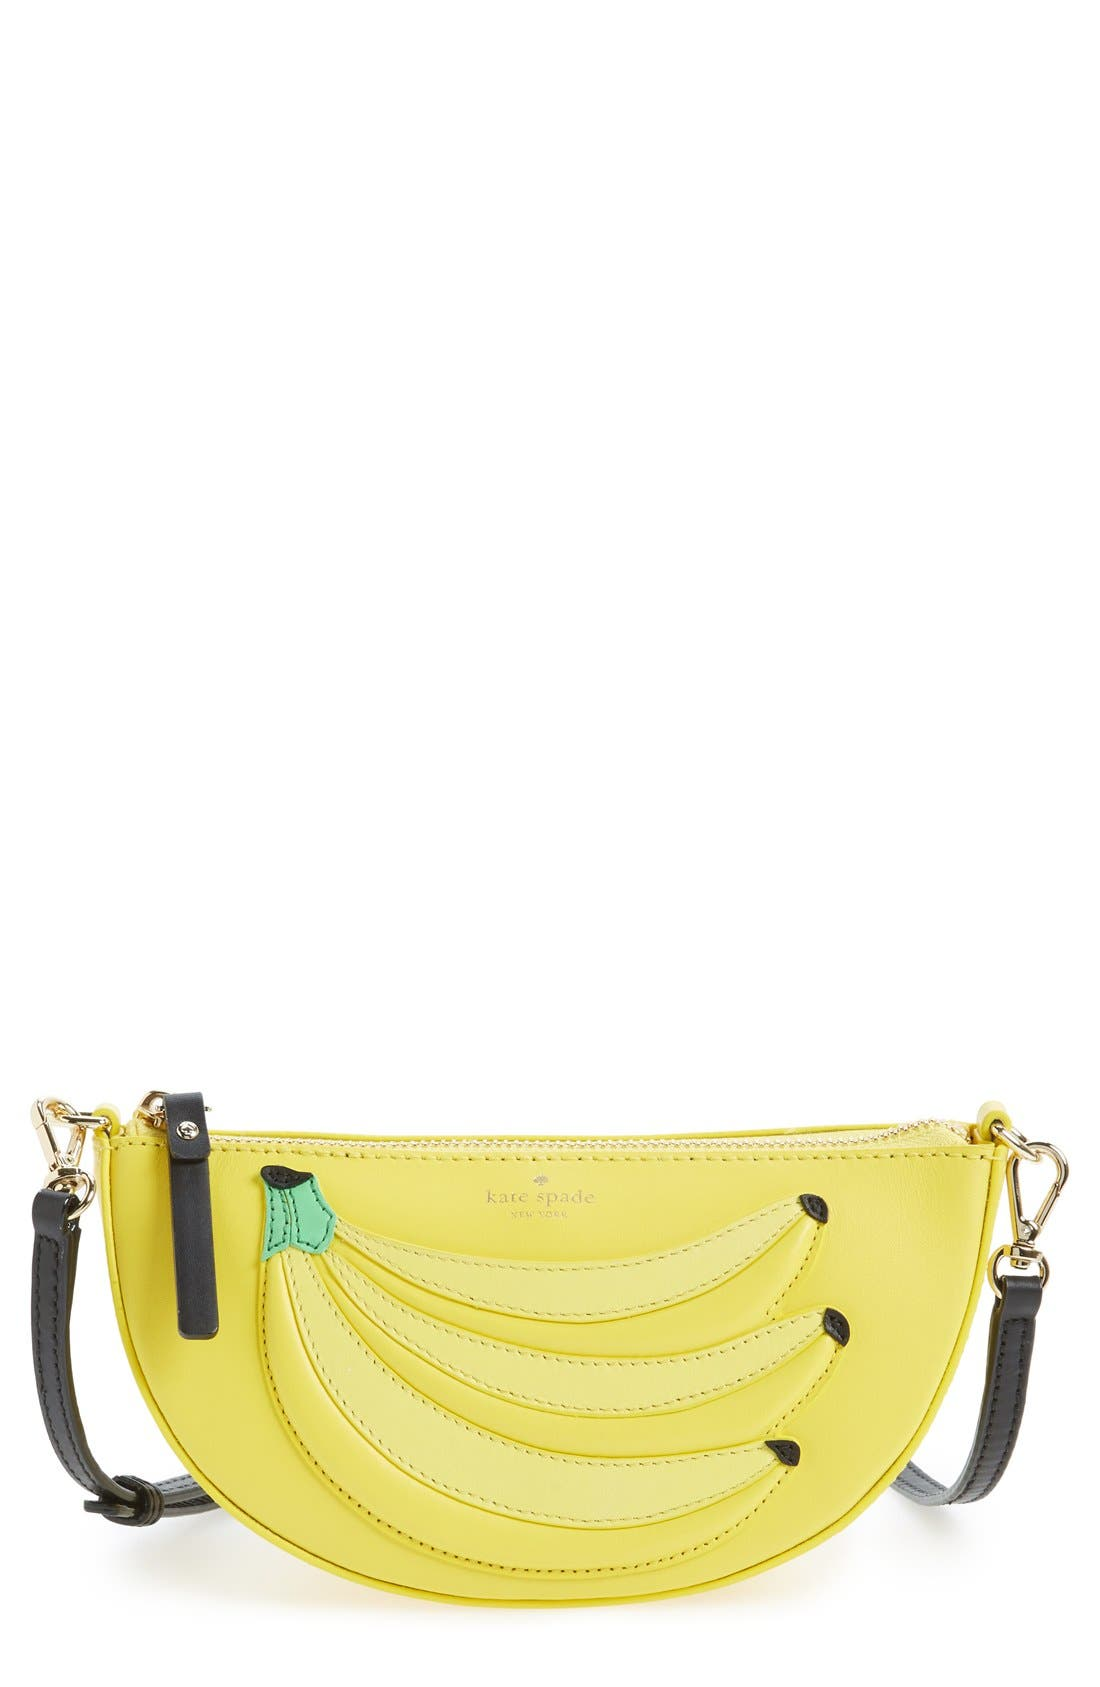 KATE SPADE NEW YORK, 'flights of fancy - bananas' crossbody bag, Main thumbnail 1, color, 700